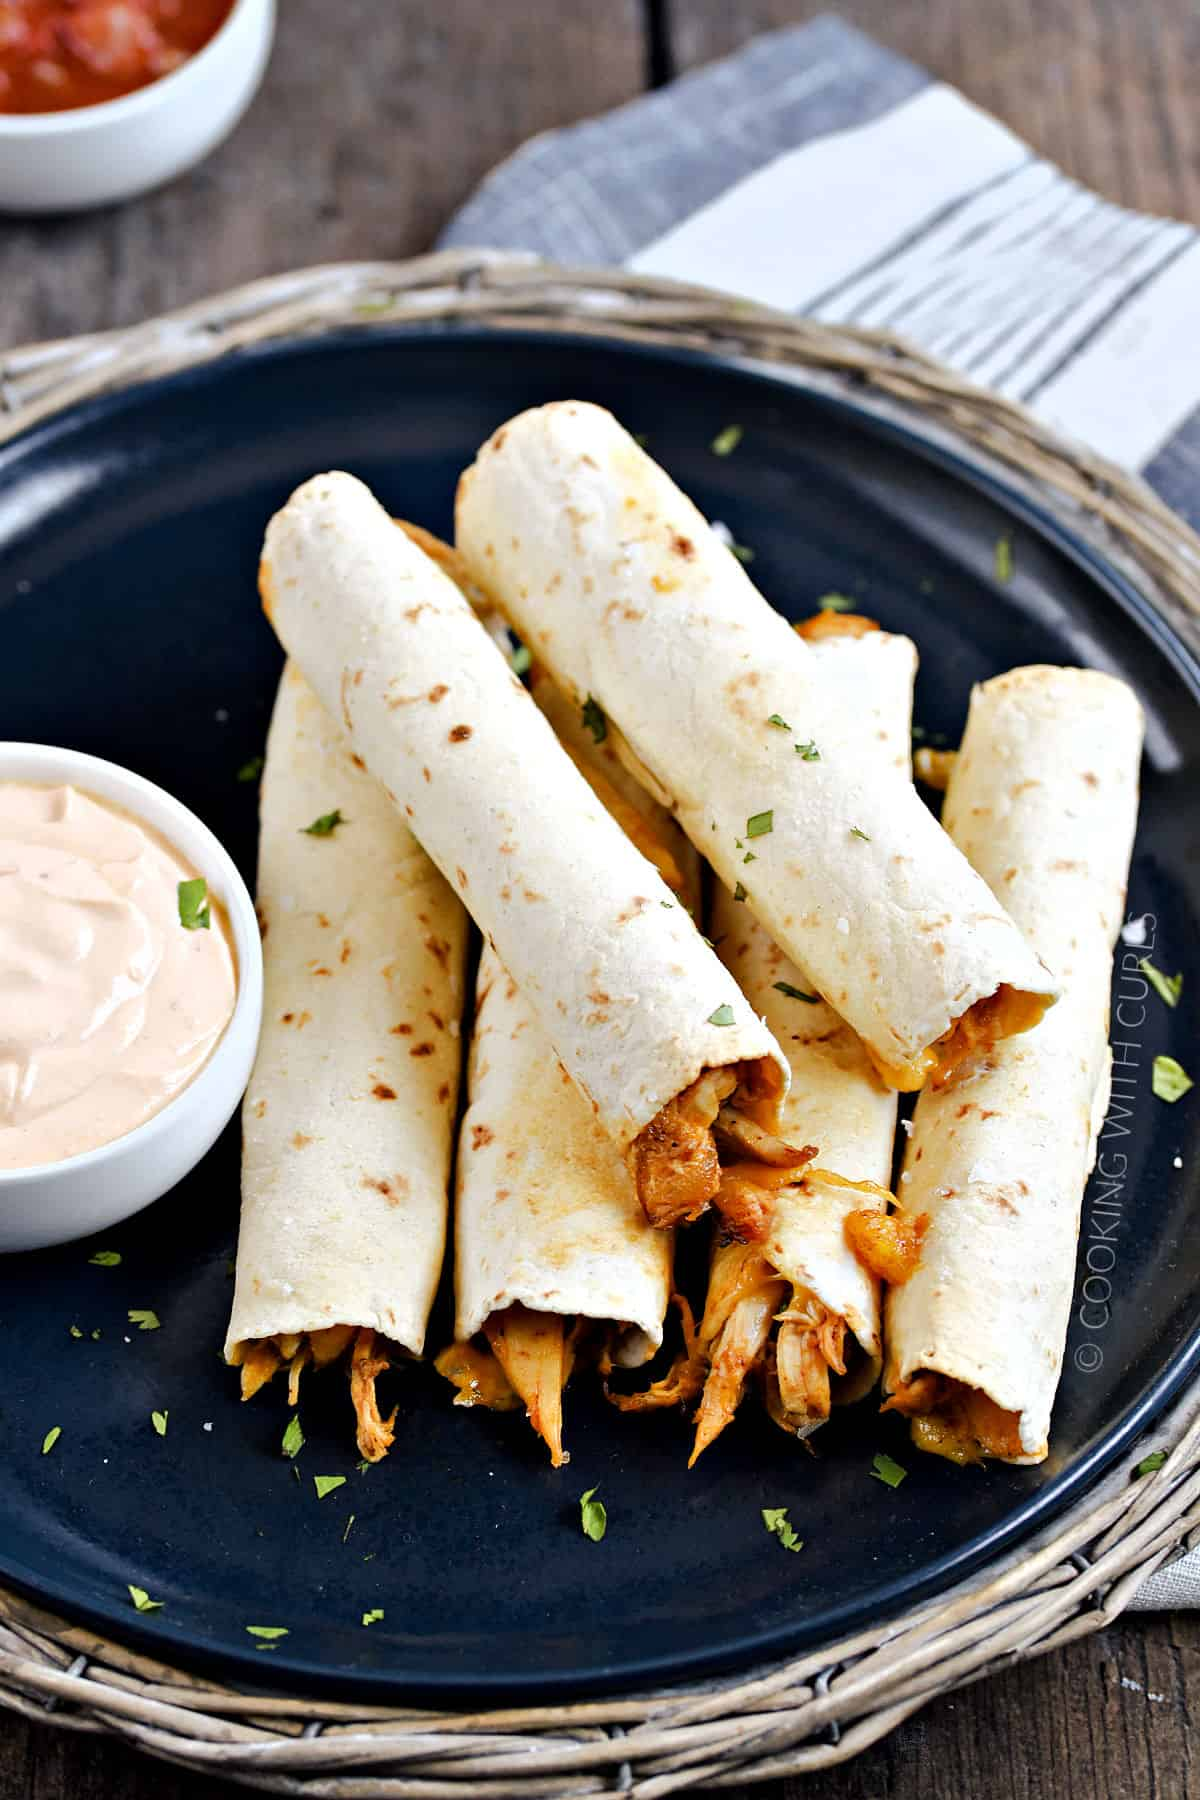 Looking down on six baked peachy chicken taquitos stacked on a plate with a side of creamy adobo sauce and salsa on the side.